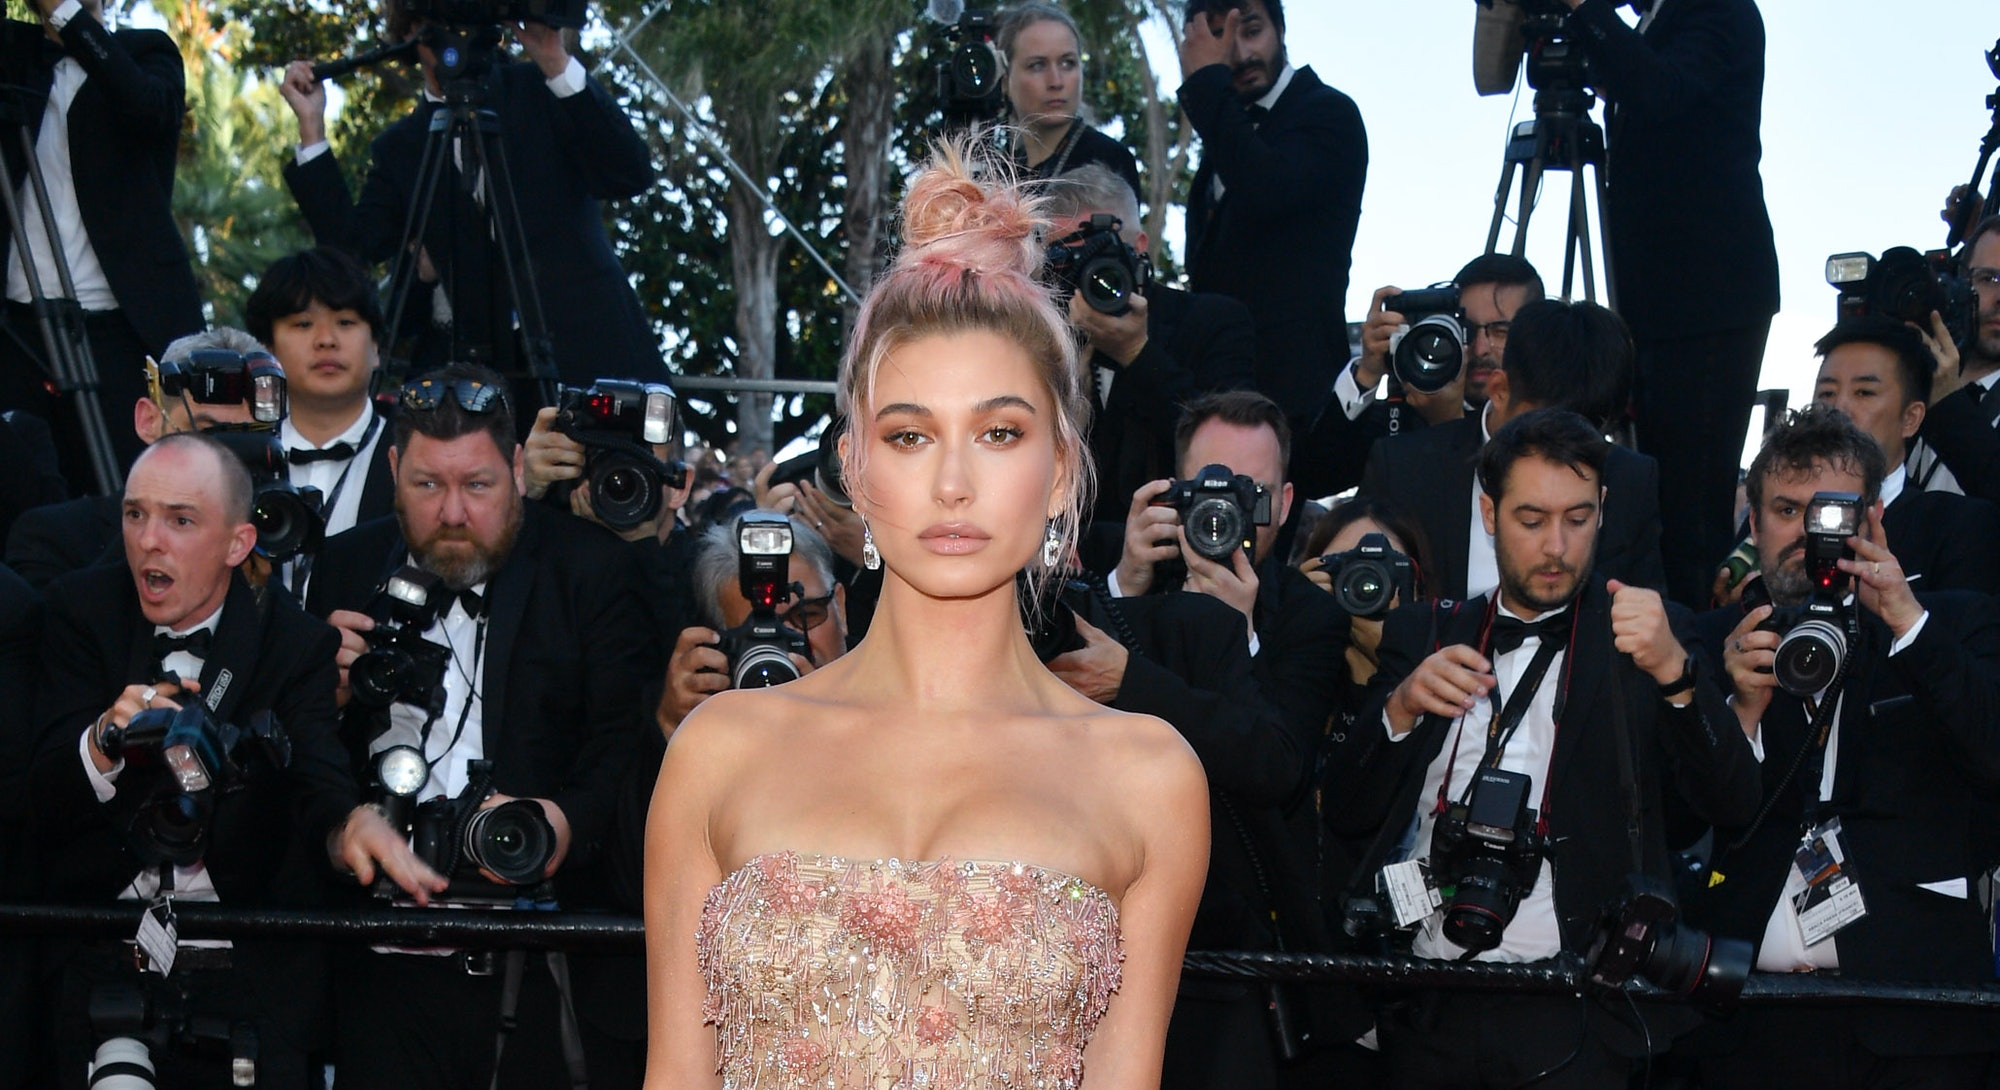 CANNES, FRANCE - MAY 12:  Hailey Baldwin attends the screening of 'Girls Of The Sun (Les Filles Du Soleil)' during the 71st annual Cannes Film Festival at Palais des Festivals on May 12, 2018 in Cannes, France.